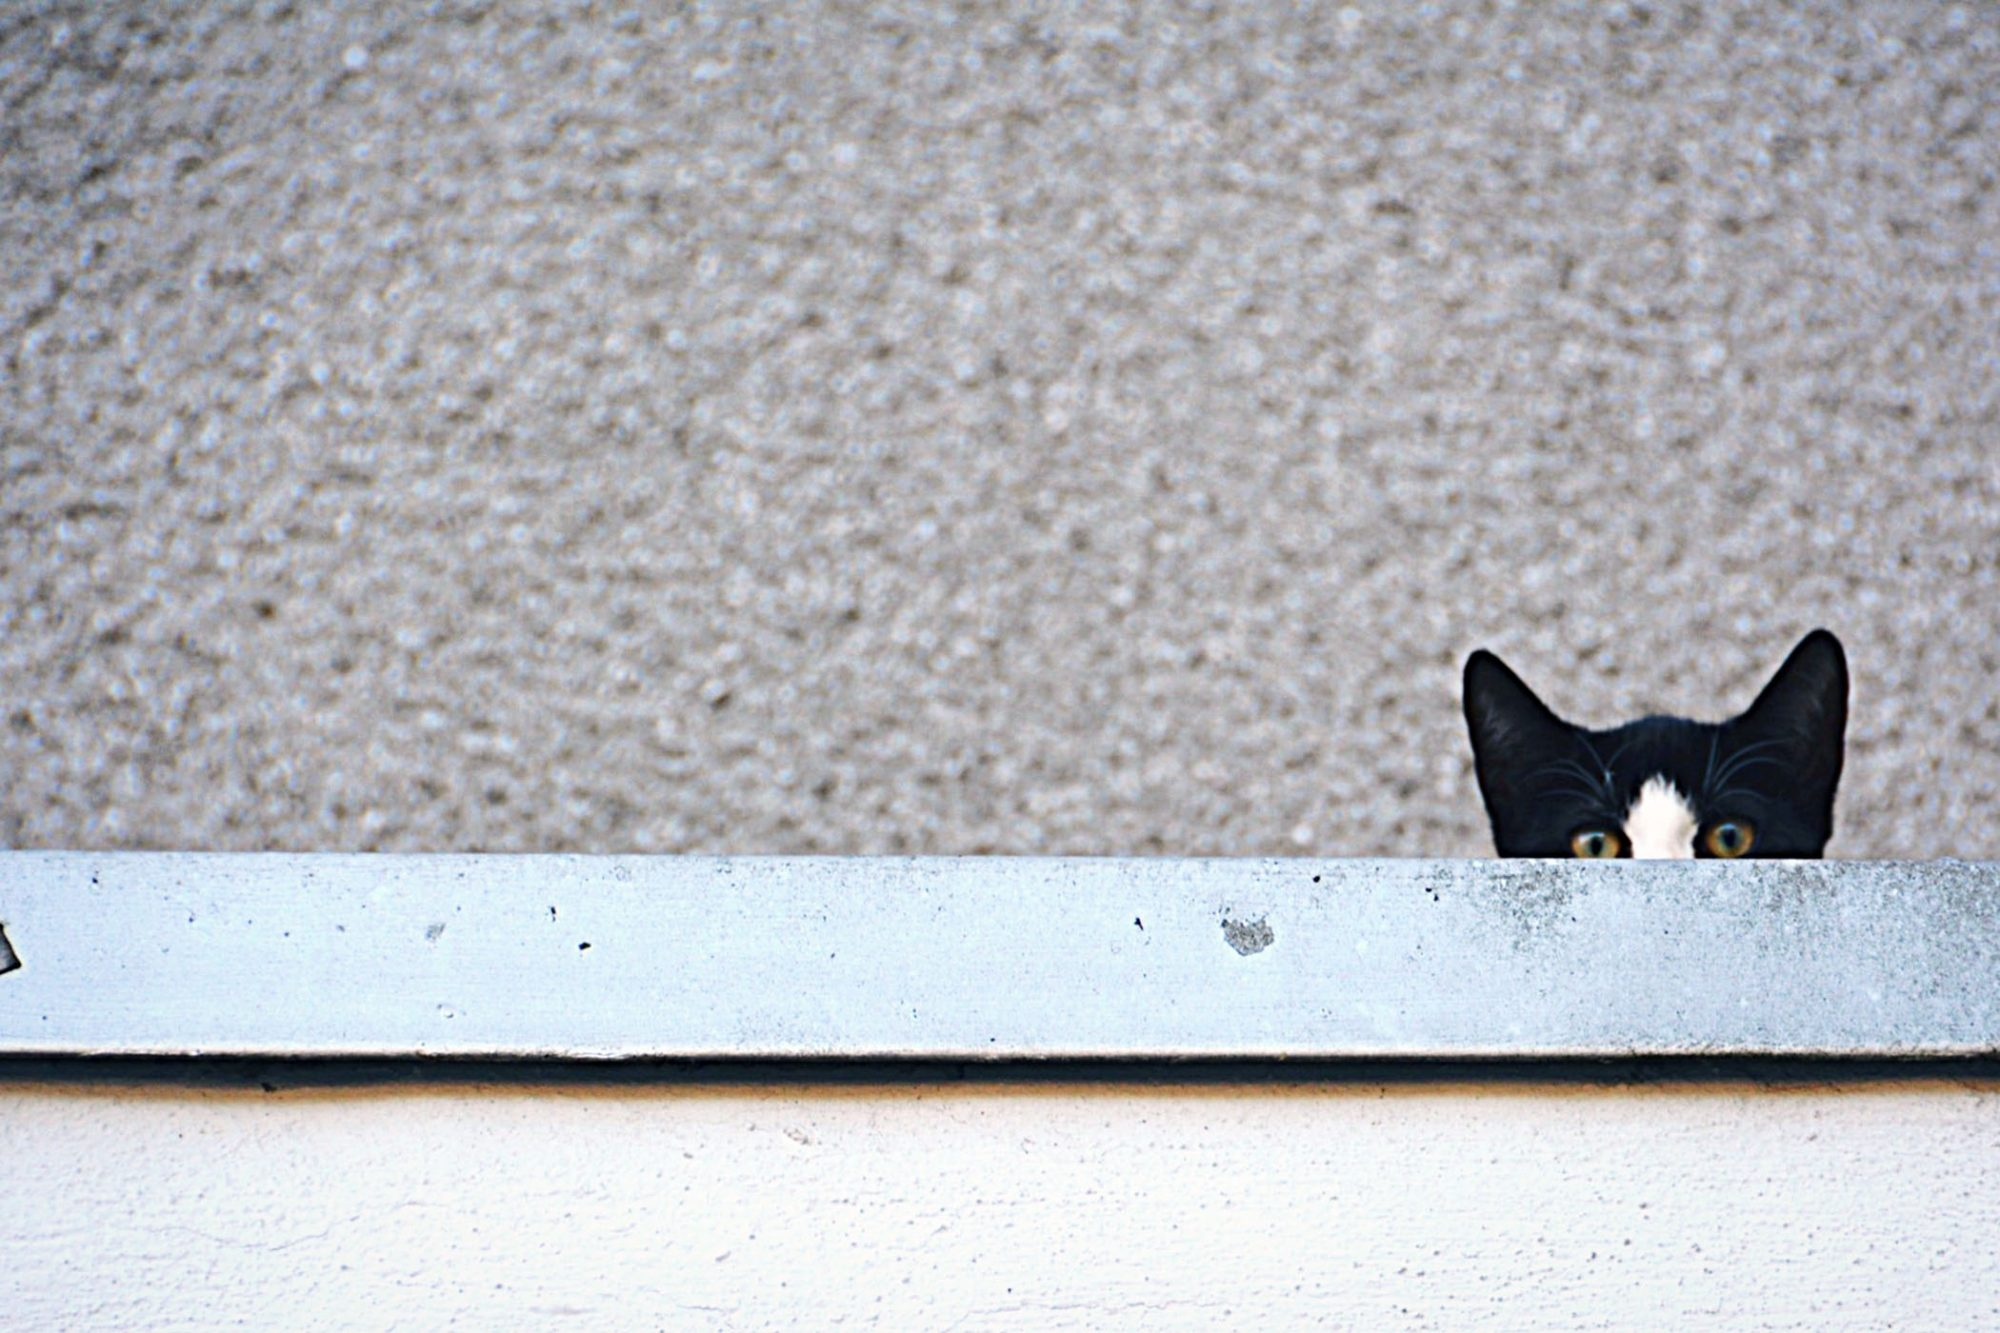 black and white cat peeking over ledge